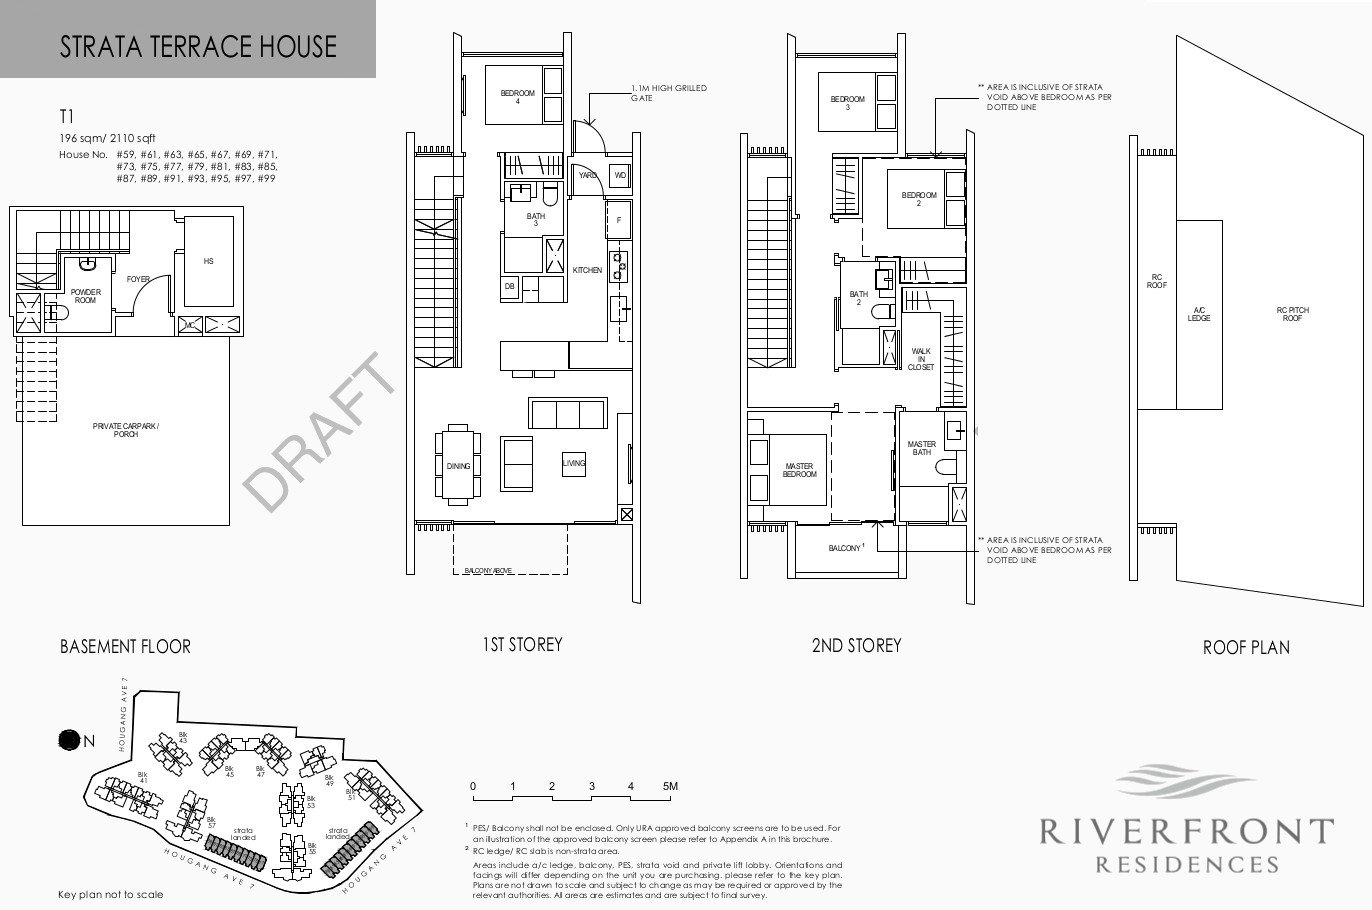 Riverfront residences by oxley showflat 61006090 for Riverfront home plans